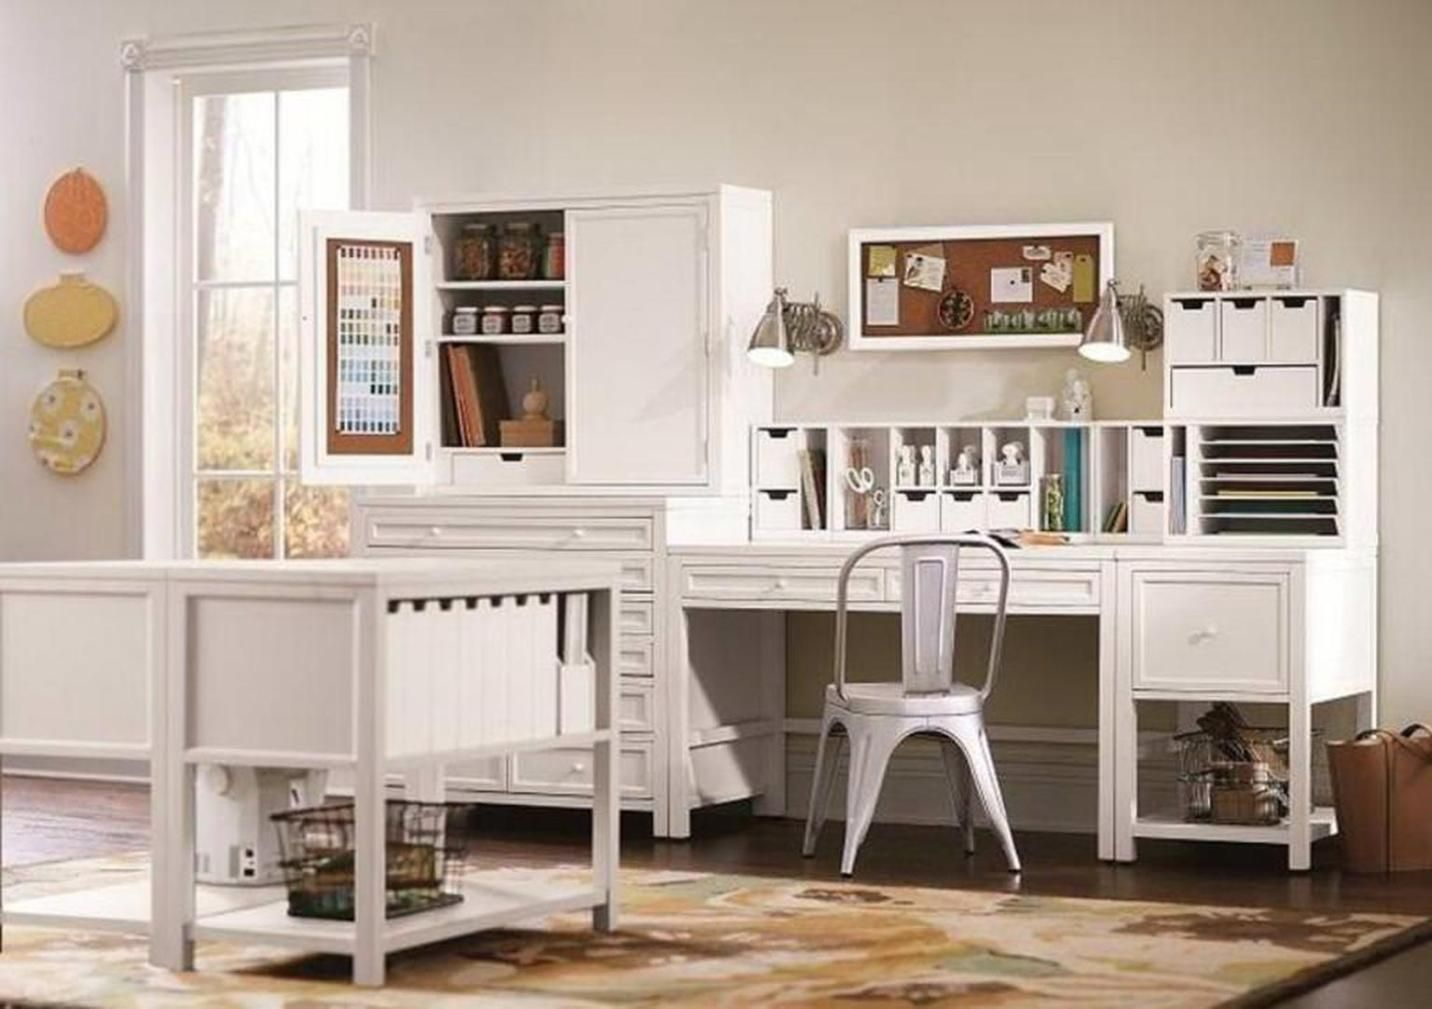 40 Best Craft Room With Target Furniture Ideas With Images Martha Stewart Living Crafts Target Furniture Martha Stewart Craft Furniture